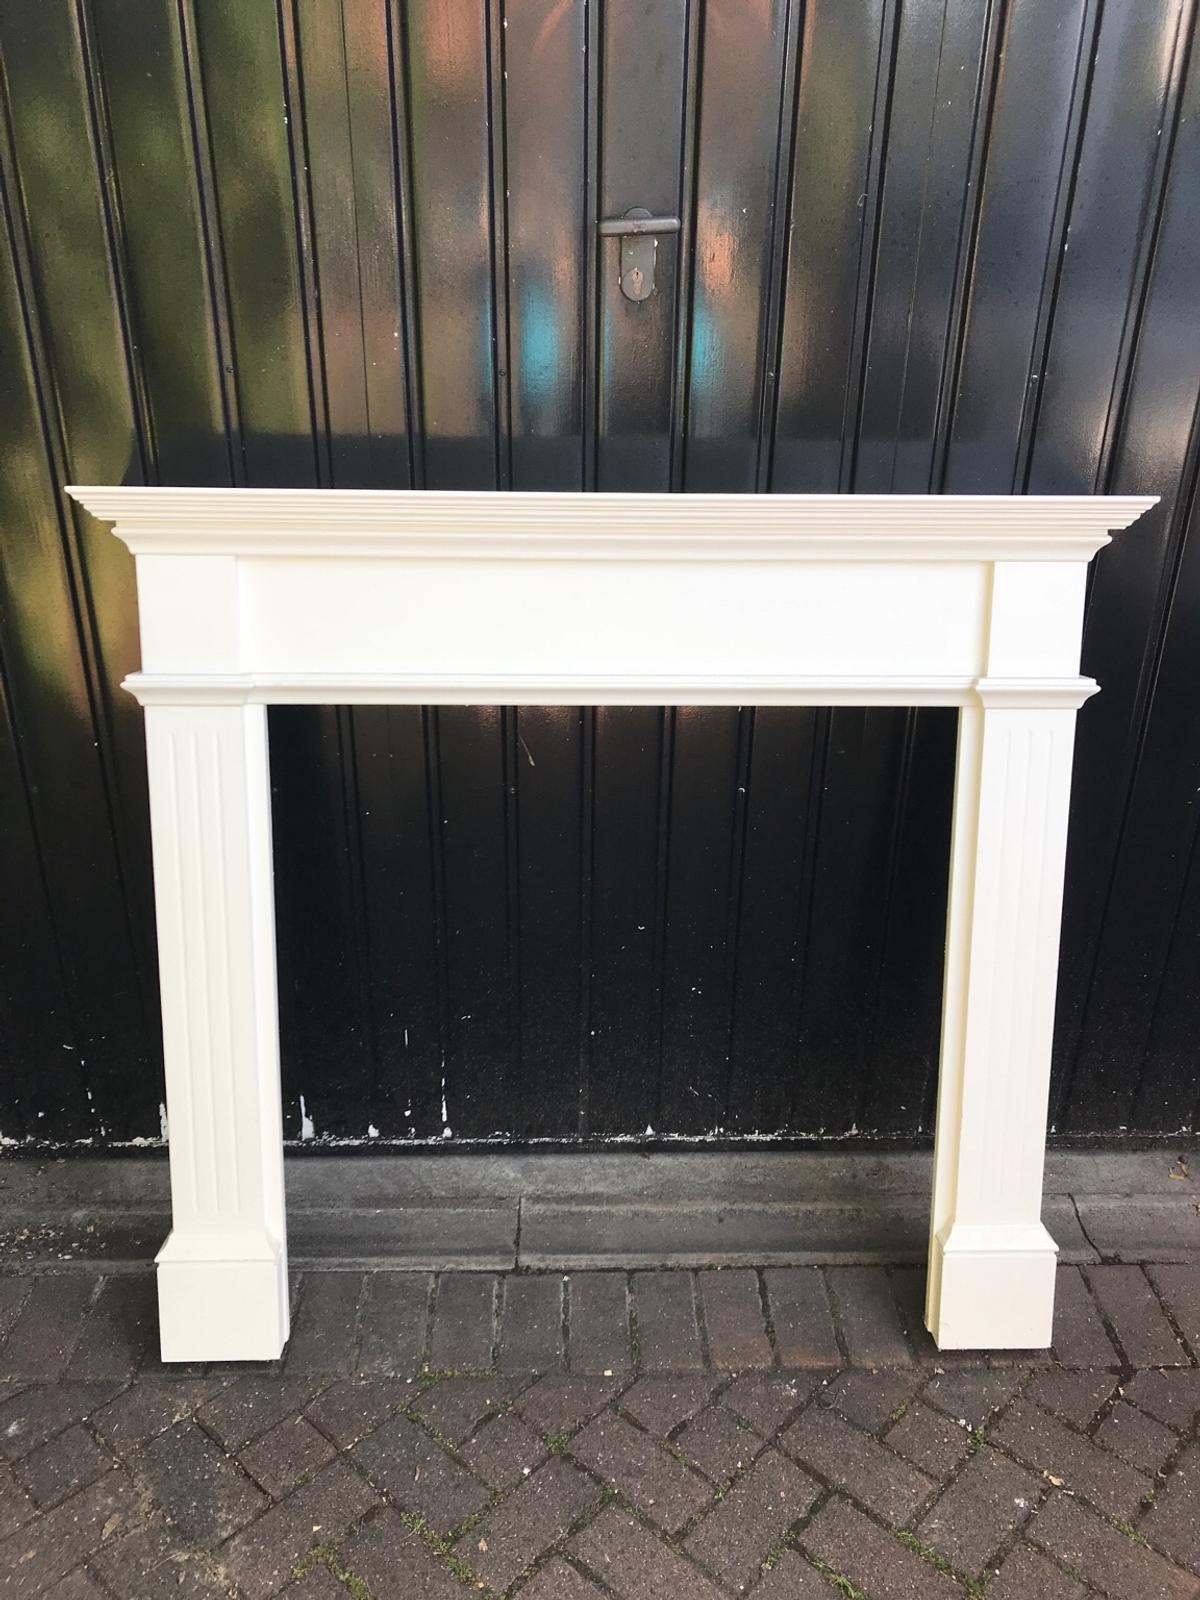 Wooden Fire Surround Painted White In, How To Paint A Wooden Fire Surround